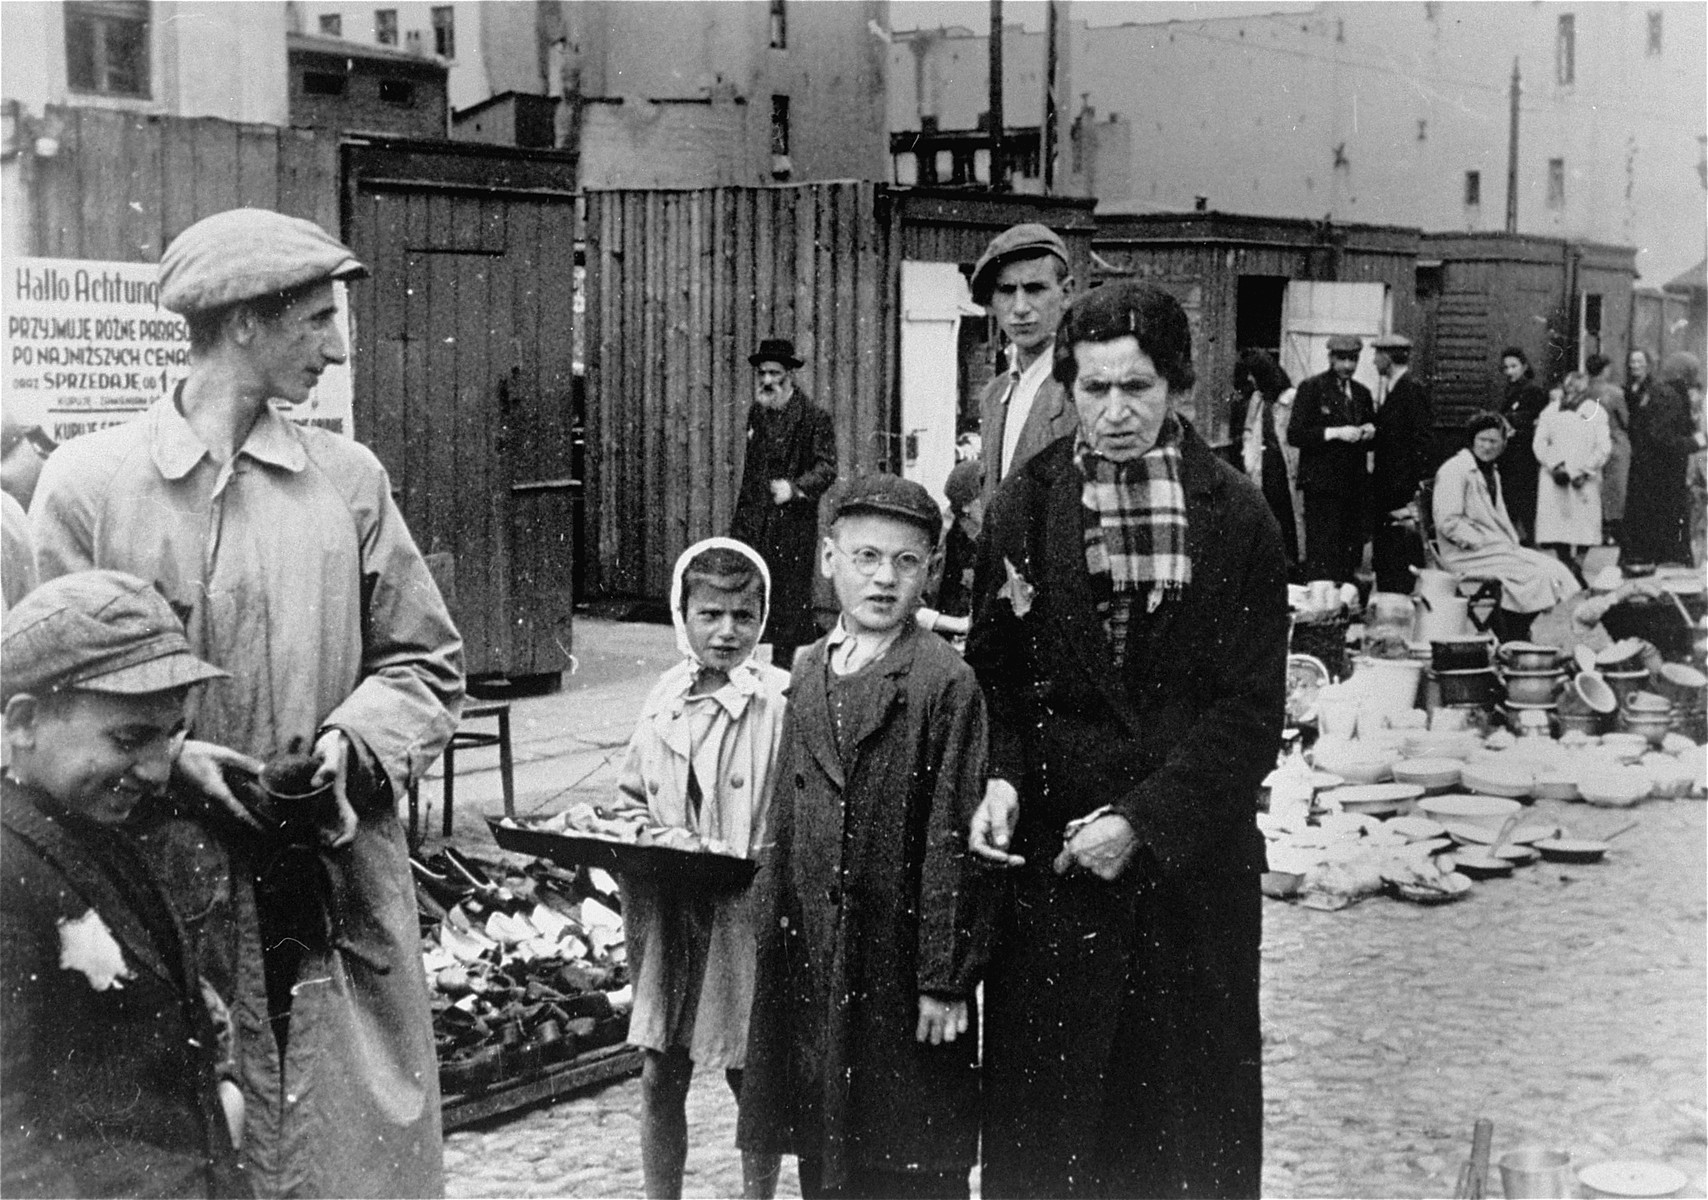 People at the outdoor market in the Lodz ghetto.  A child vendor carries her wares in a tray slung around her neck.